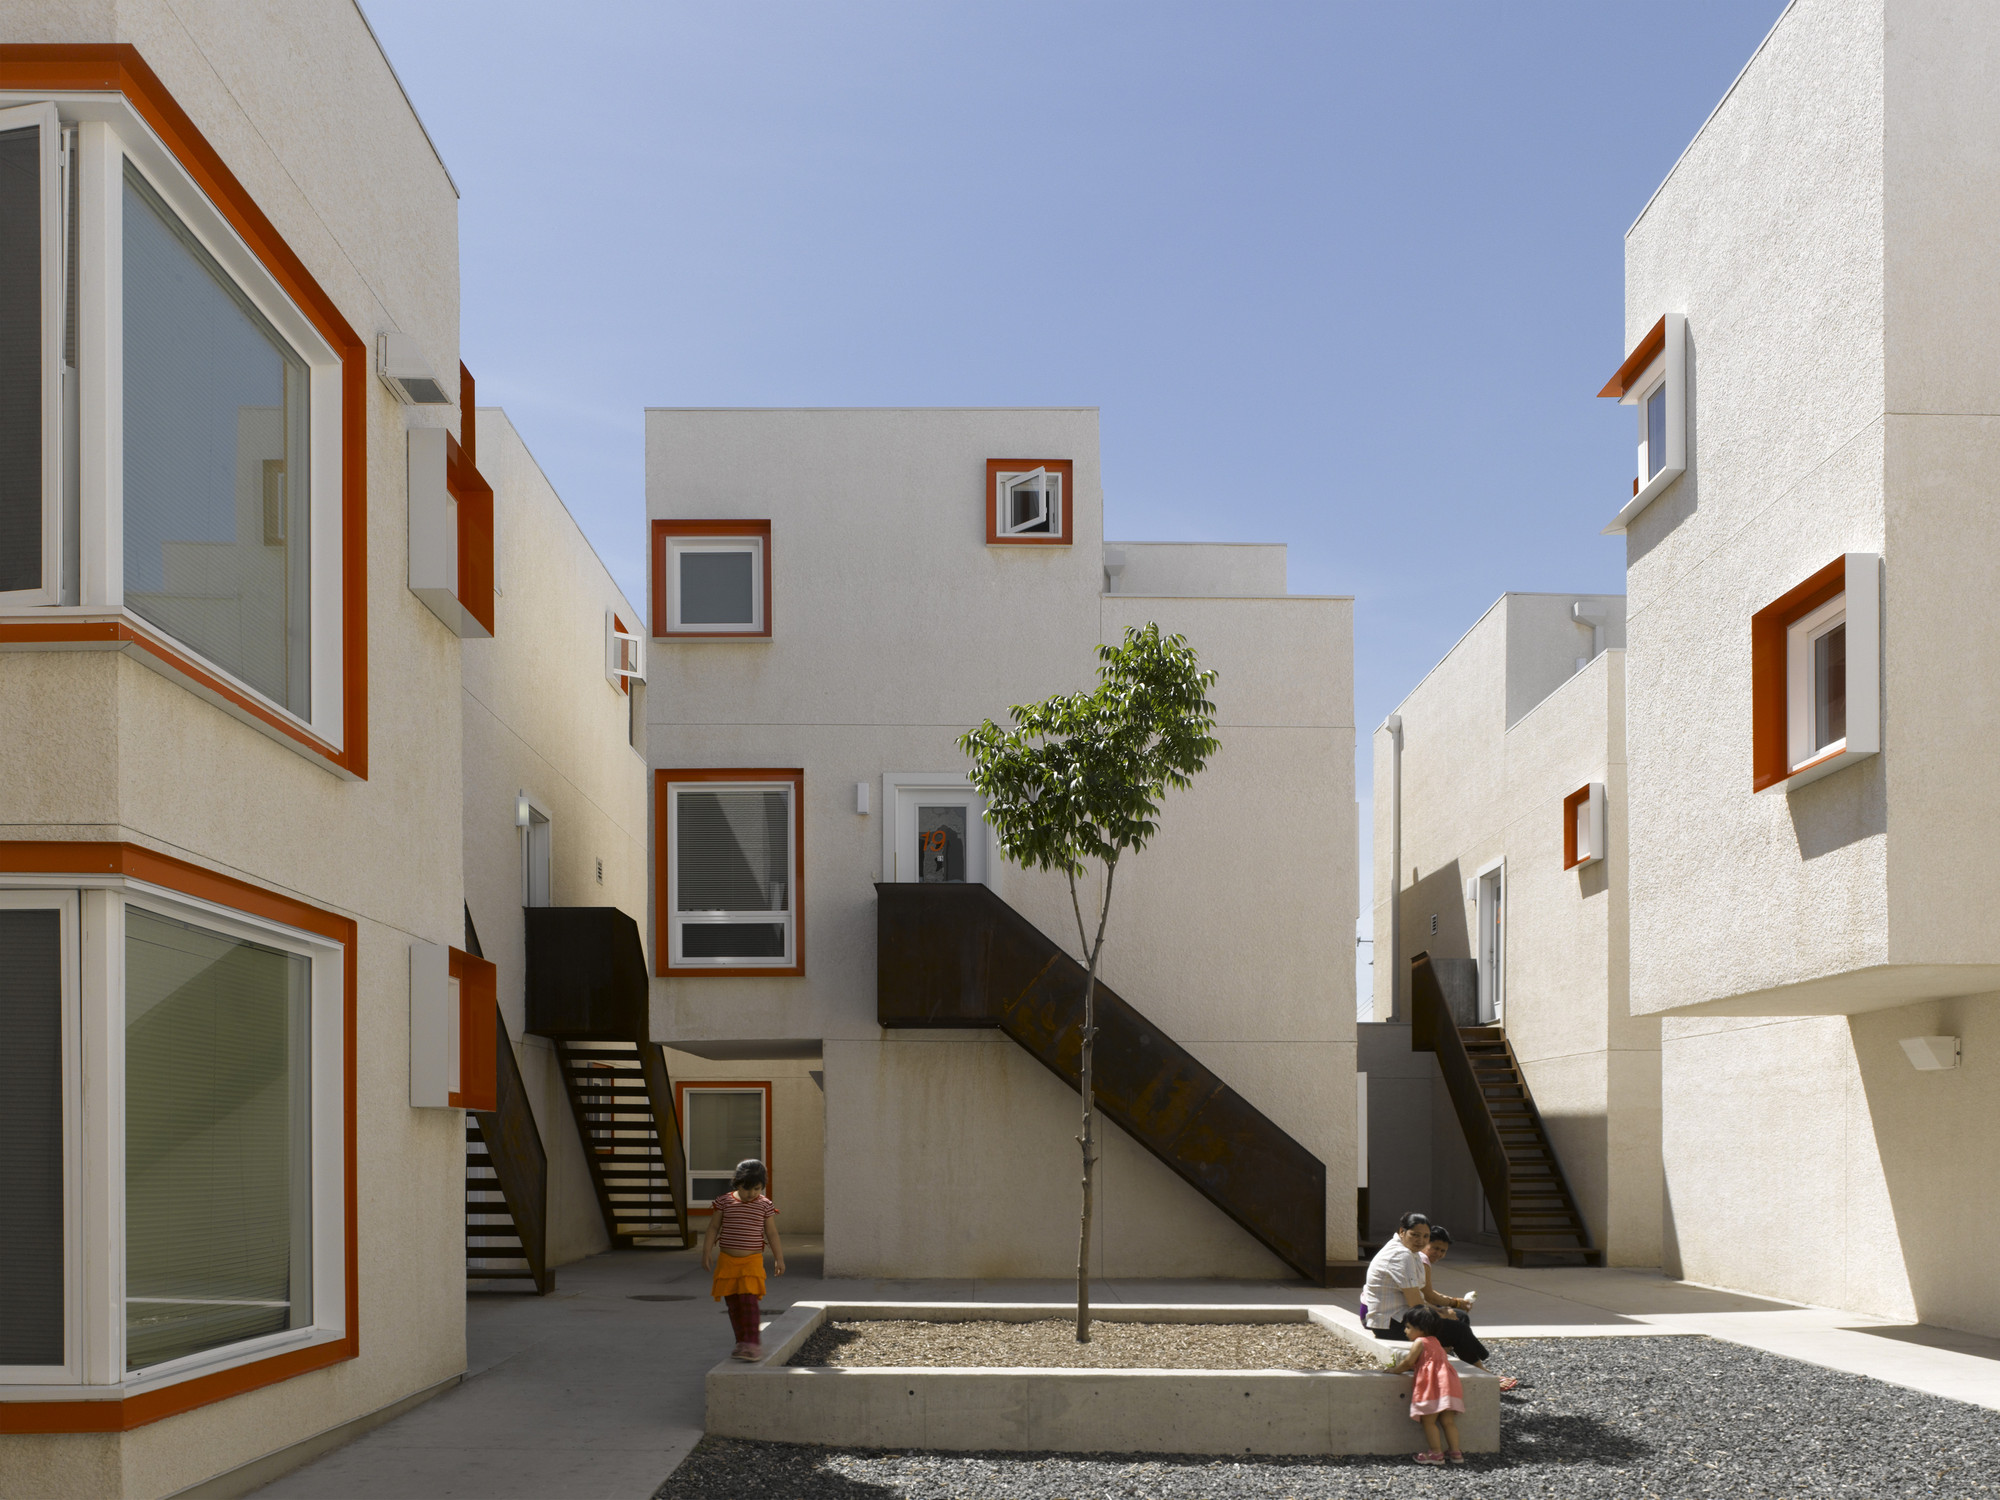 Gallery of centre village 5468796 architecture for Arch design architects limited